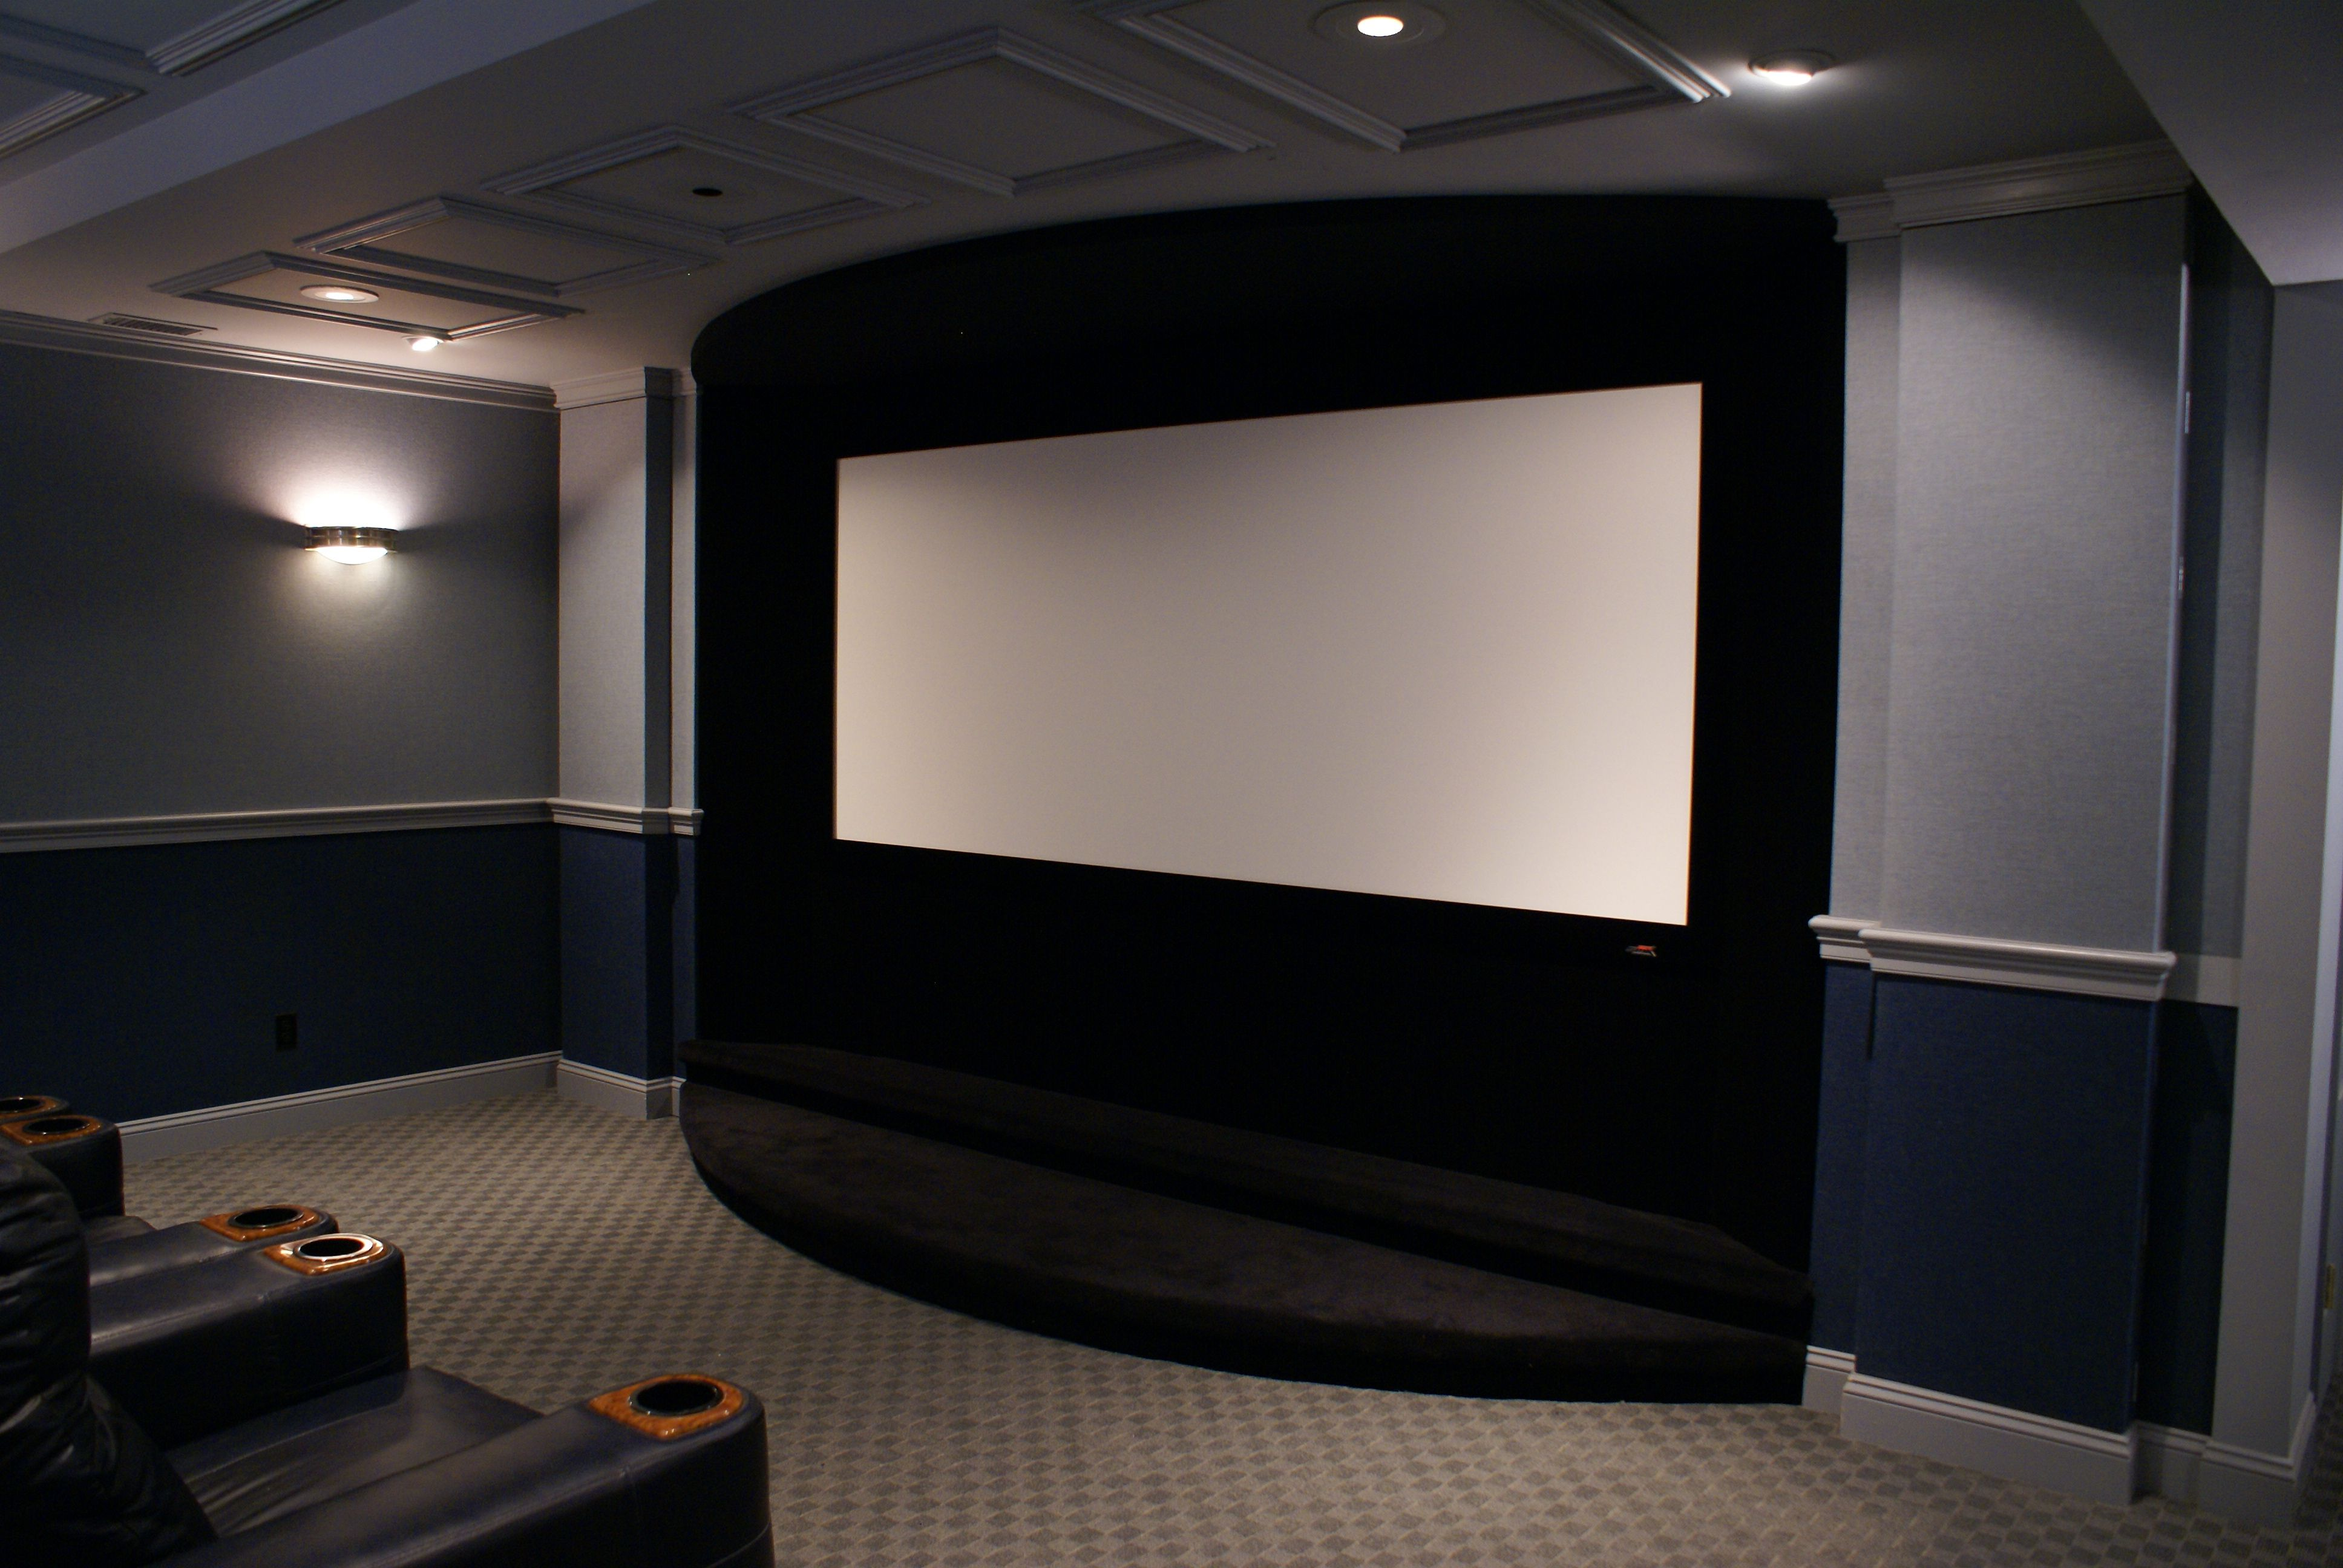 Minimalist Approach To Screen Wall Avs Forum Home Theater What Does Your Wiring Cabinet Look Like Discussions And Reviews